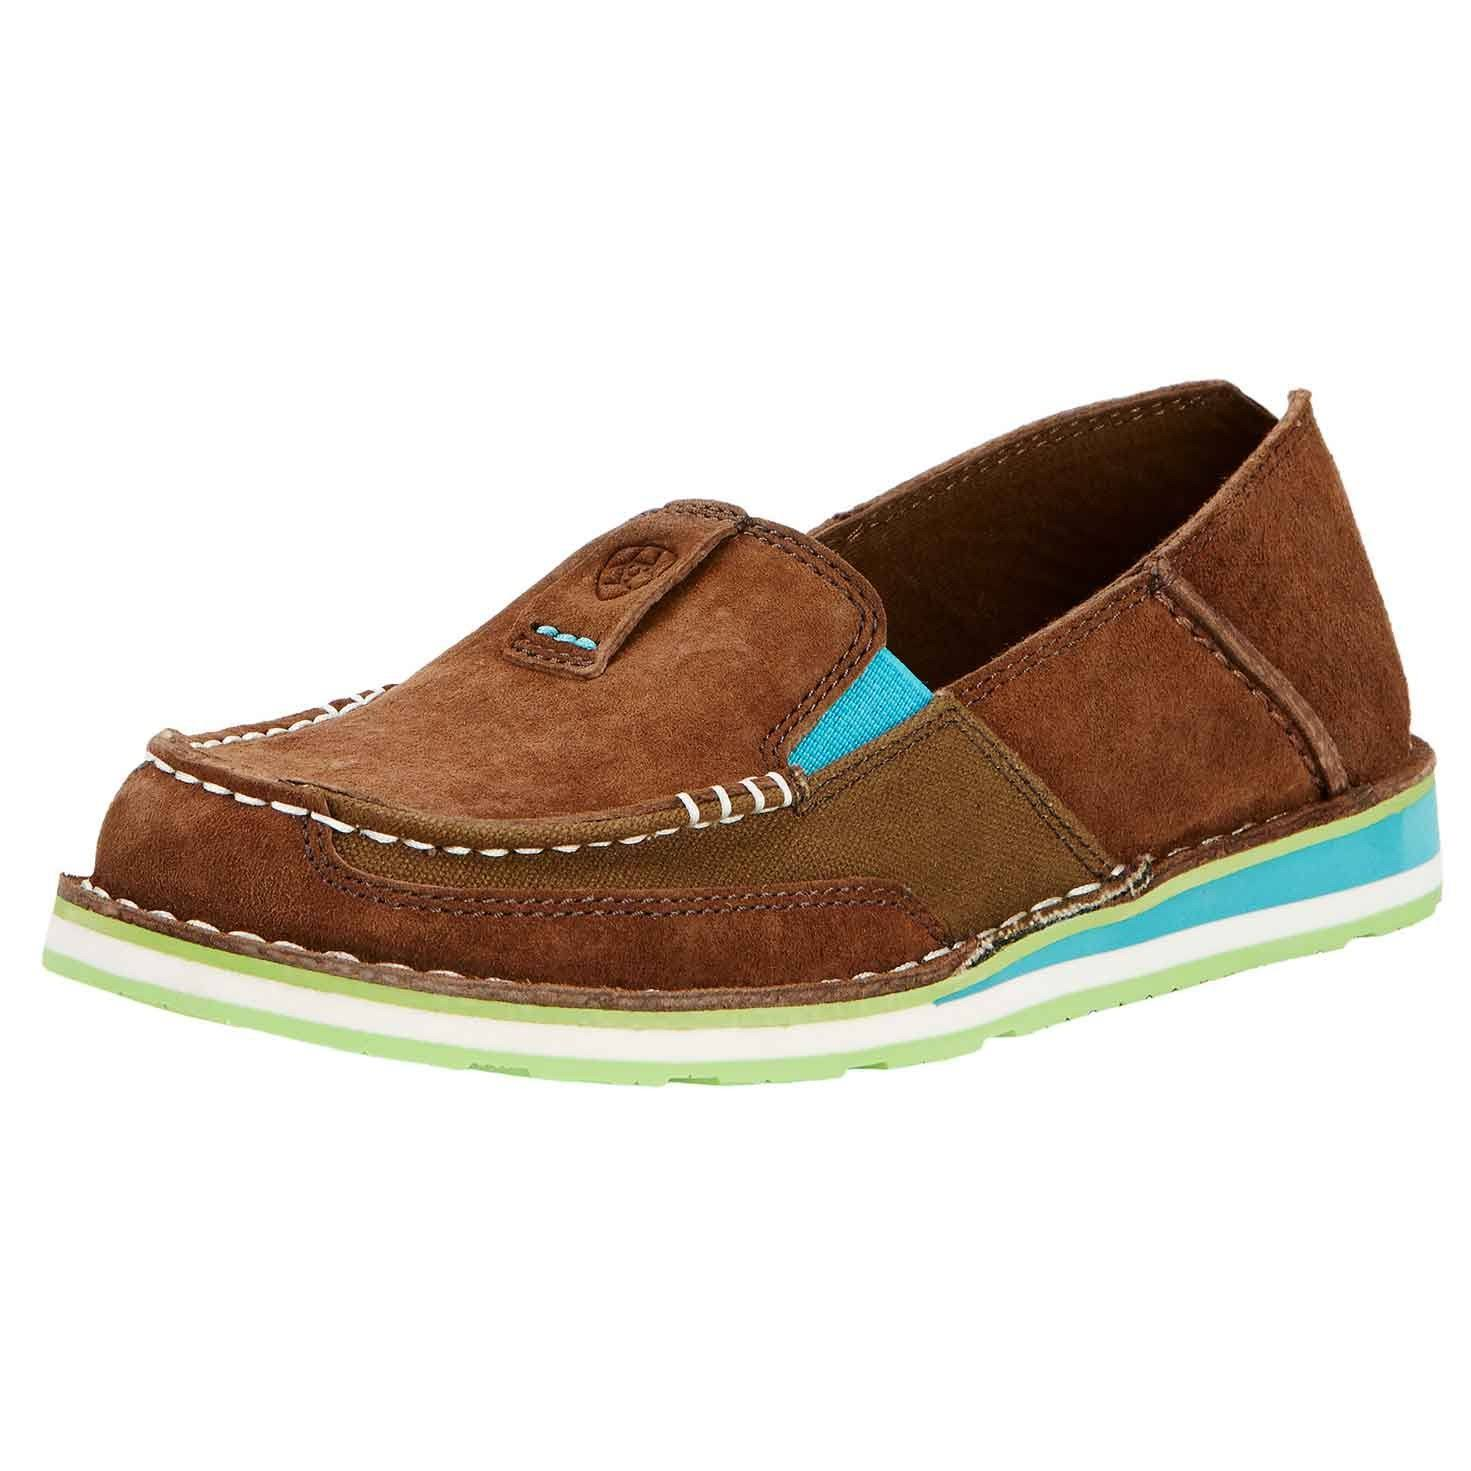 Ariat Womens Cruiser MOC Toe Slip On Leather Shoes - Palm Brown, 8 US